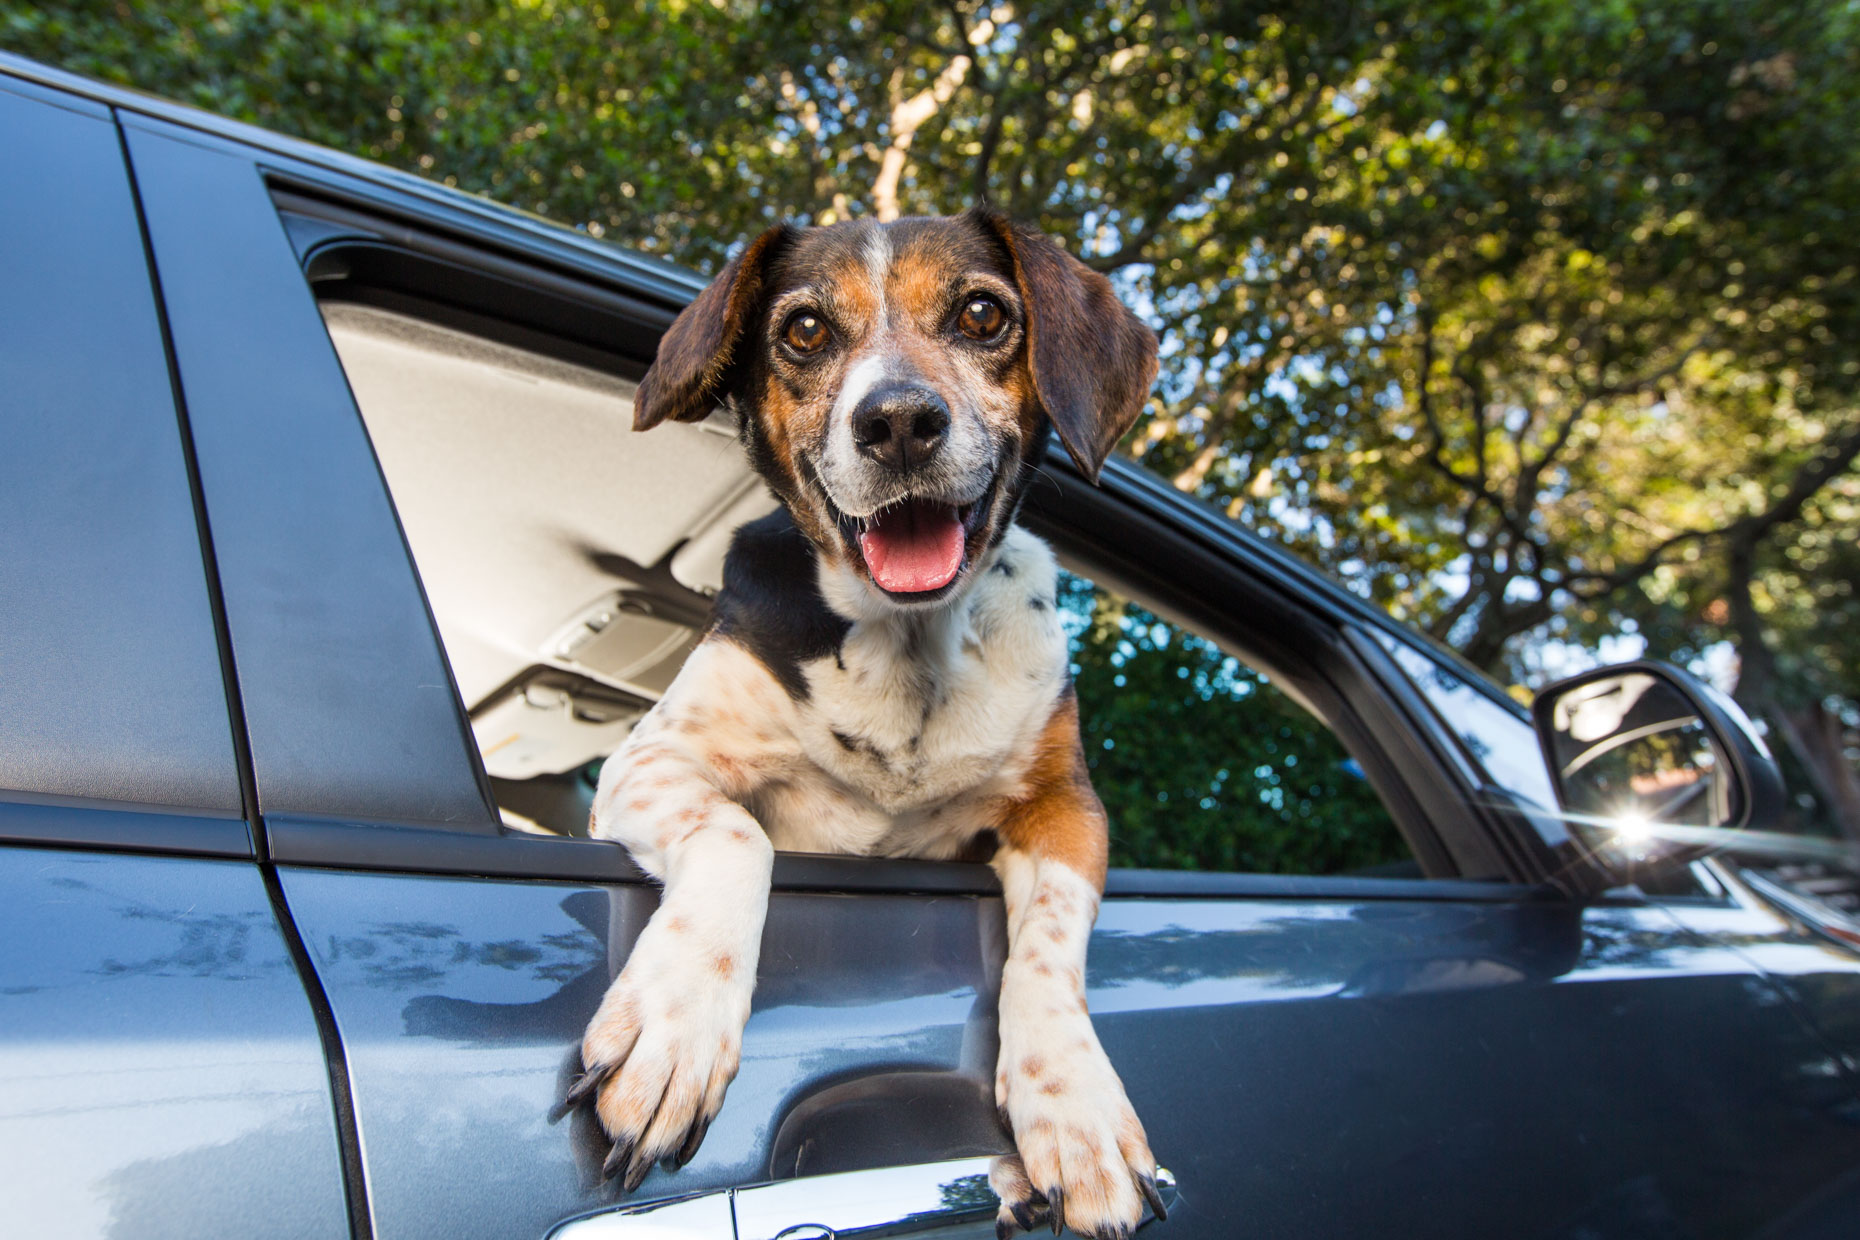 Dog Lifestyle Photography | Dog in Car Window by Mark Rogers